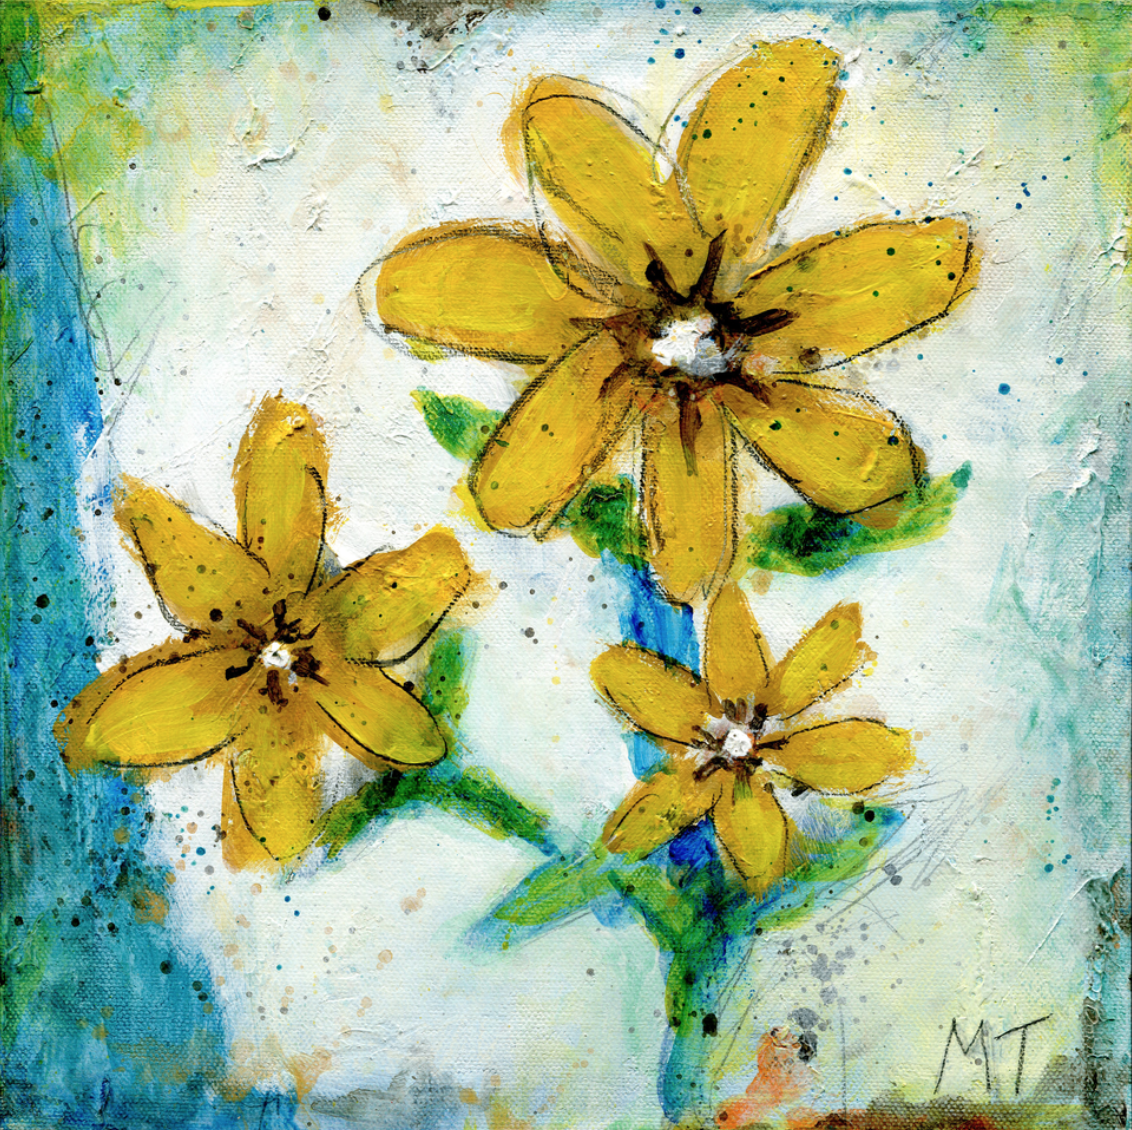 mandy_thompson_abstract_yellow_flower_painting.jpg